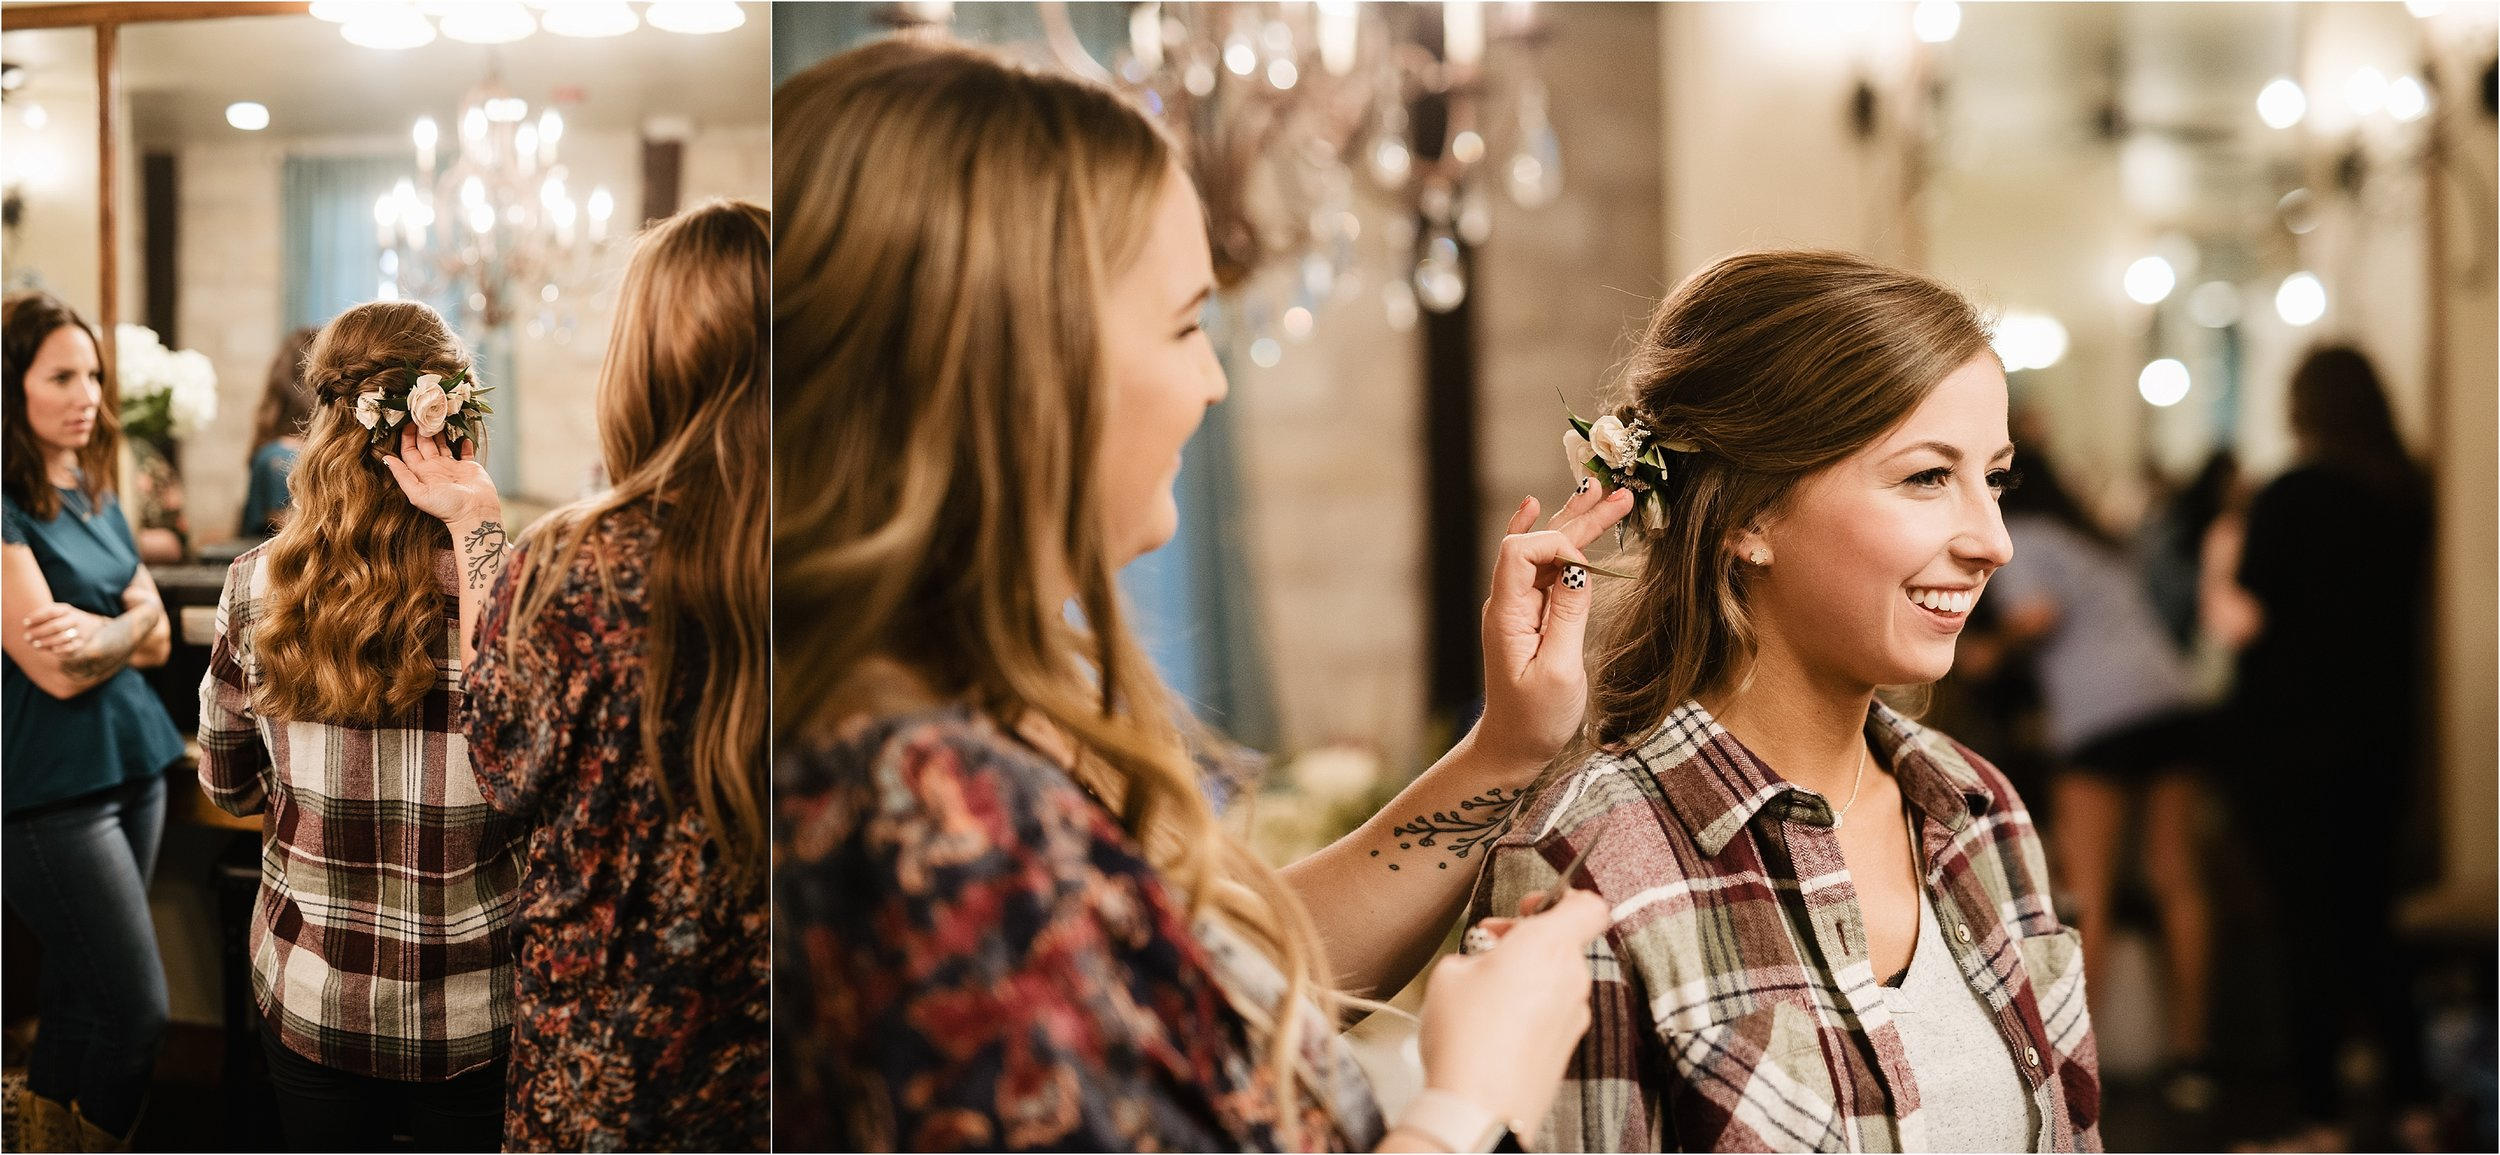 oklahoma wedding photographer hair makeup robes matching outfits bridal party getting ready bridesmaids maid of honor dressing hair floral